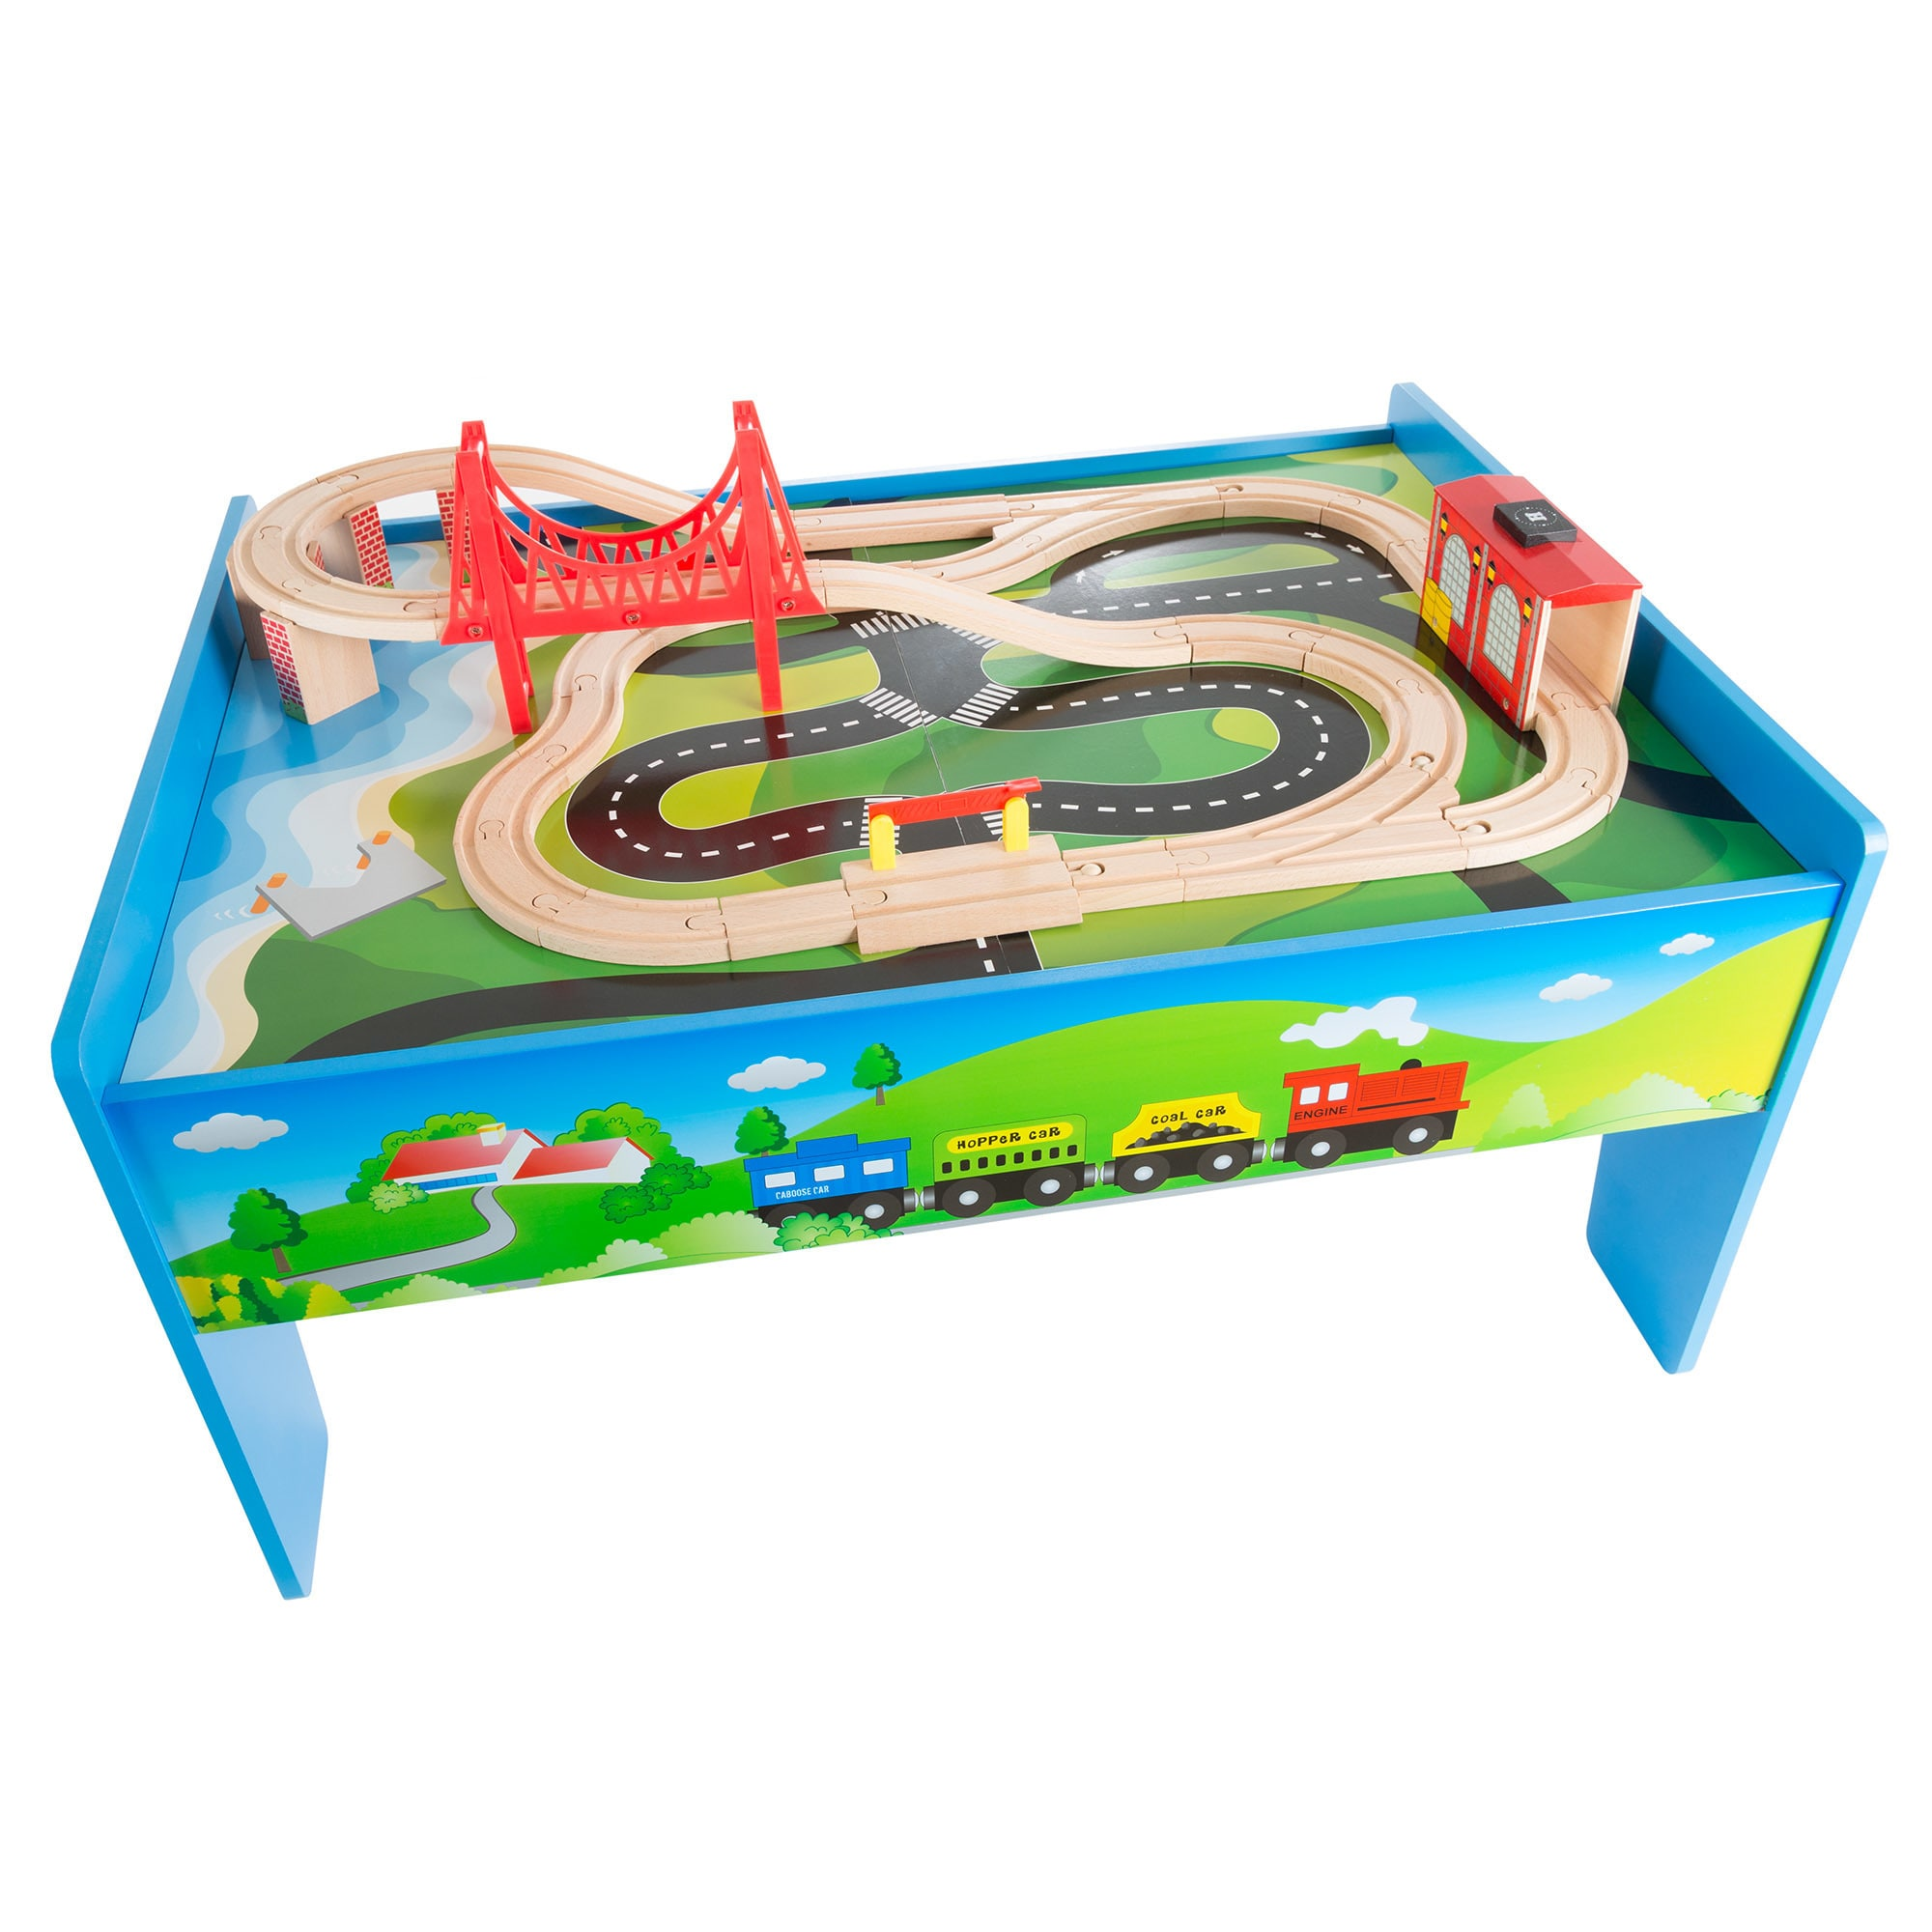 Wooden Train Set Table for Kids Deluxe Had Painted Wooden Set by Hey! Play! - Free Shipping Today - Overstock.com - 24811022  sc 1 st  Overstock & Wooden Train Set Table for Kids Deluxe Had Painted Wooden Set by ...